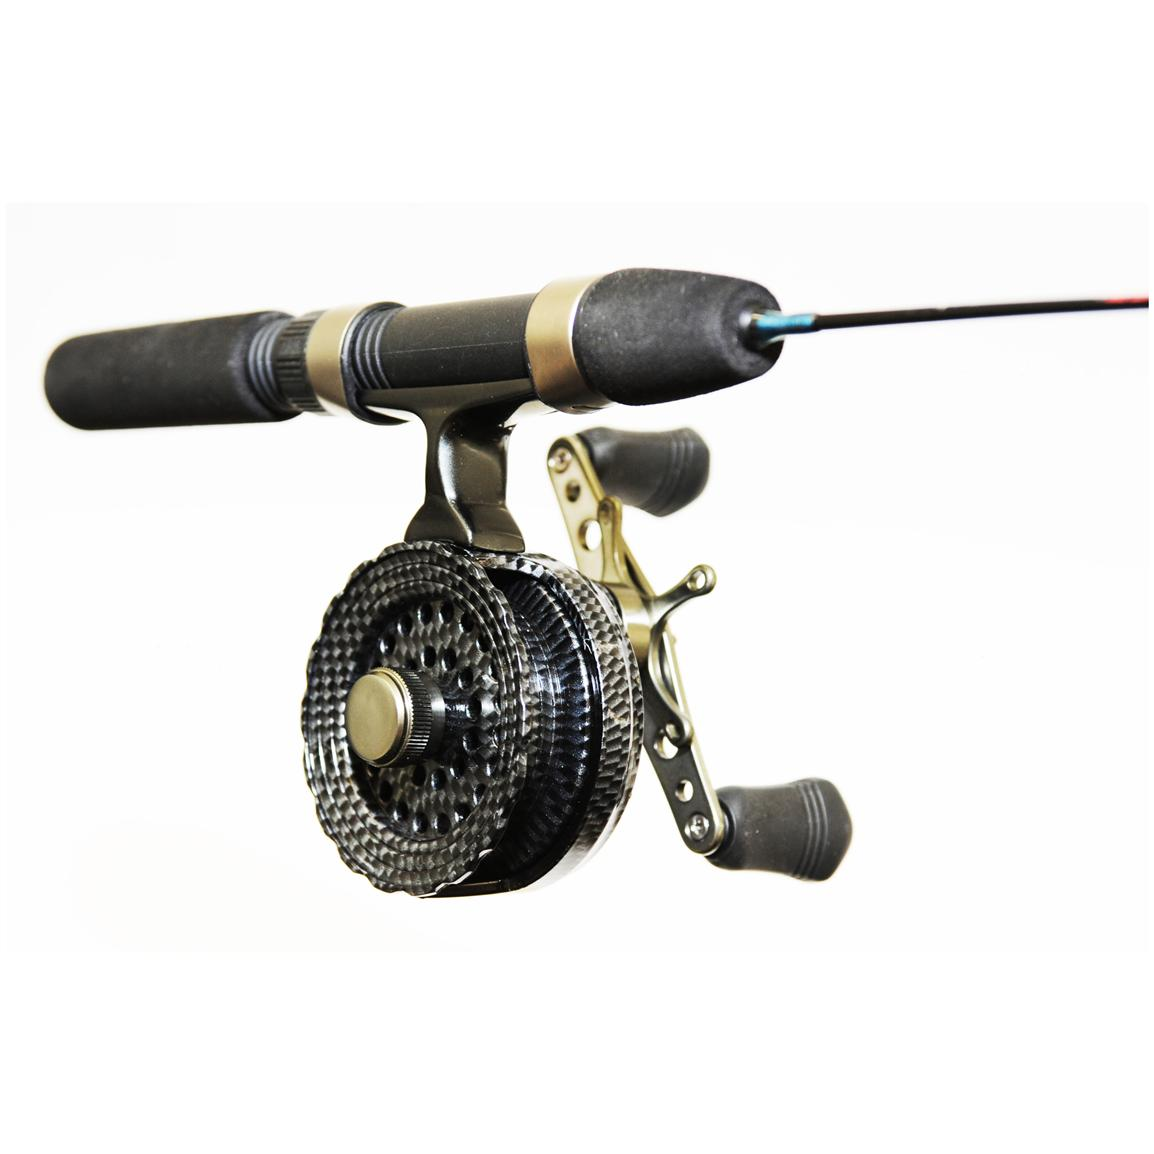 eagle claw inline ice fishing spinning rod reel combo